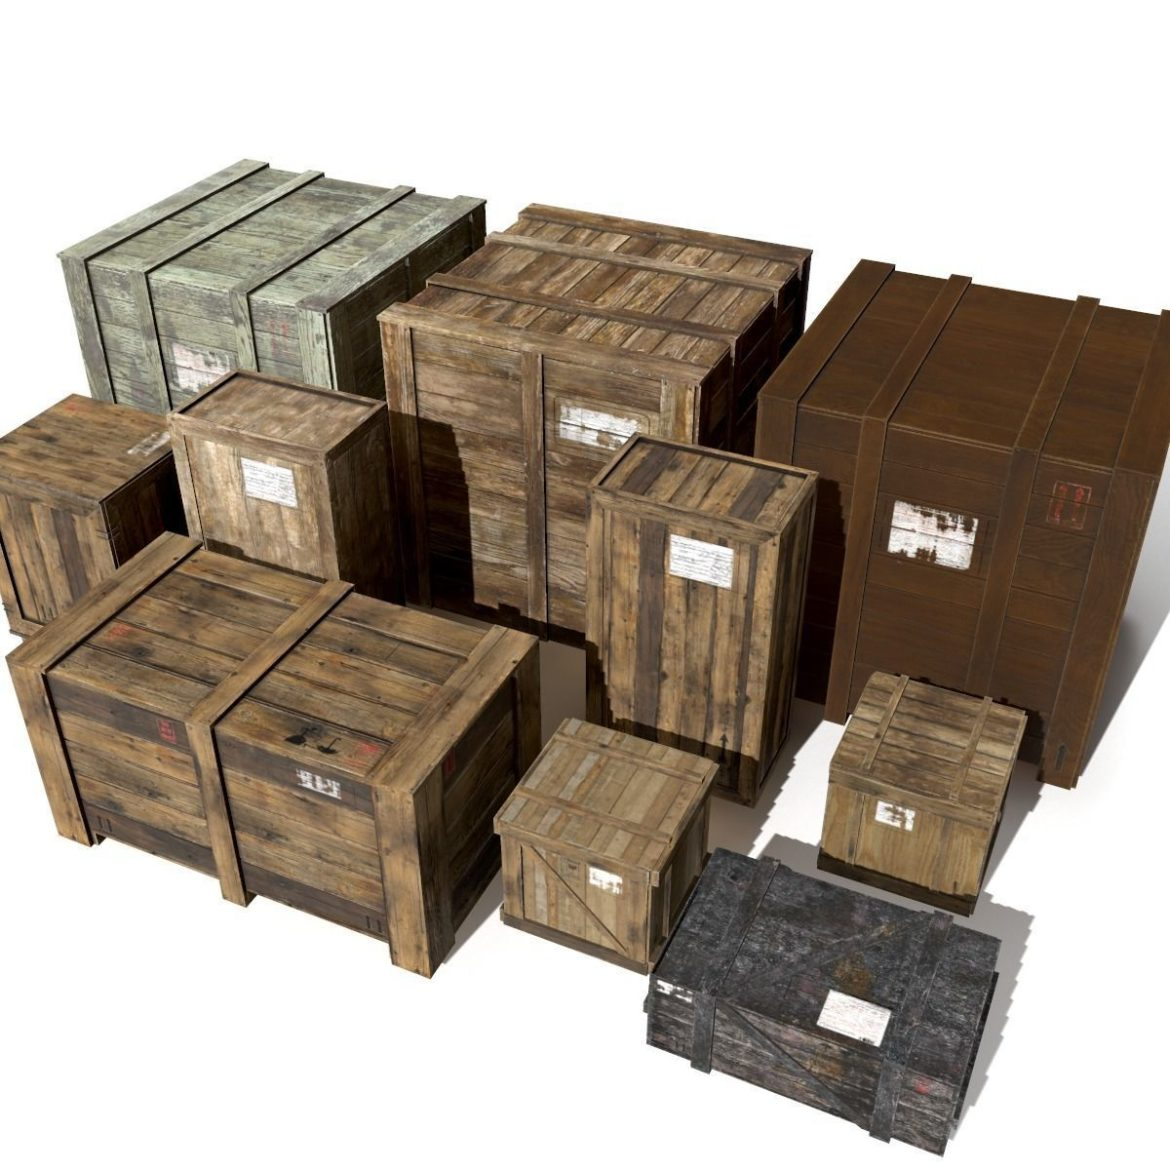 transport crates pack 3 3d model fbx obj 319445